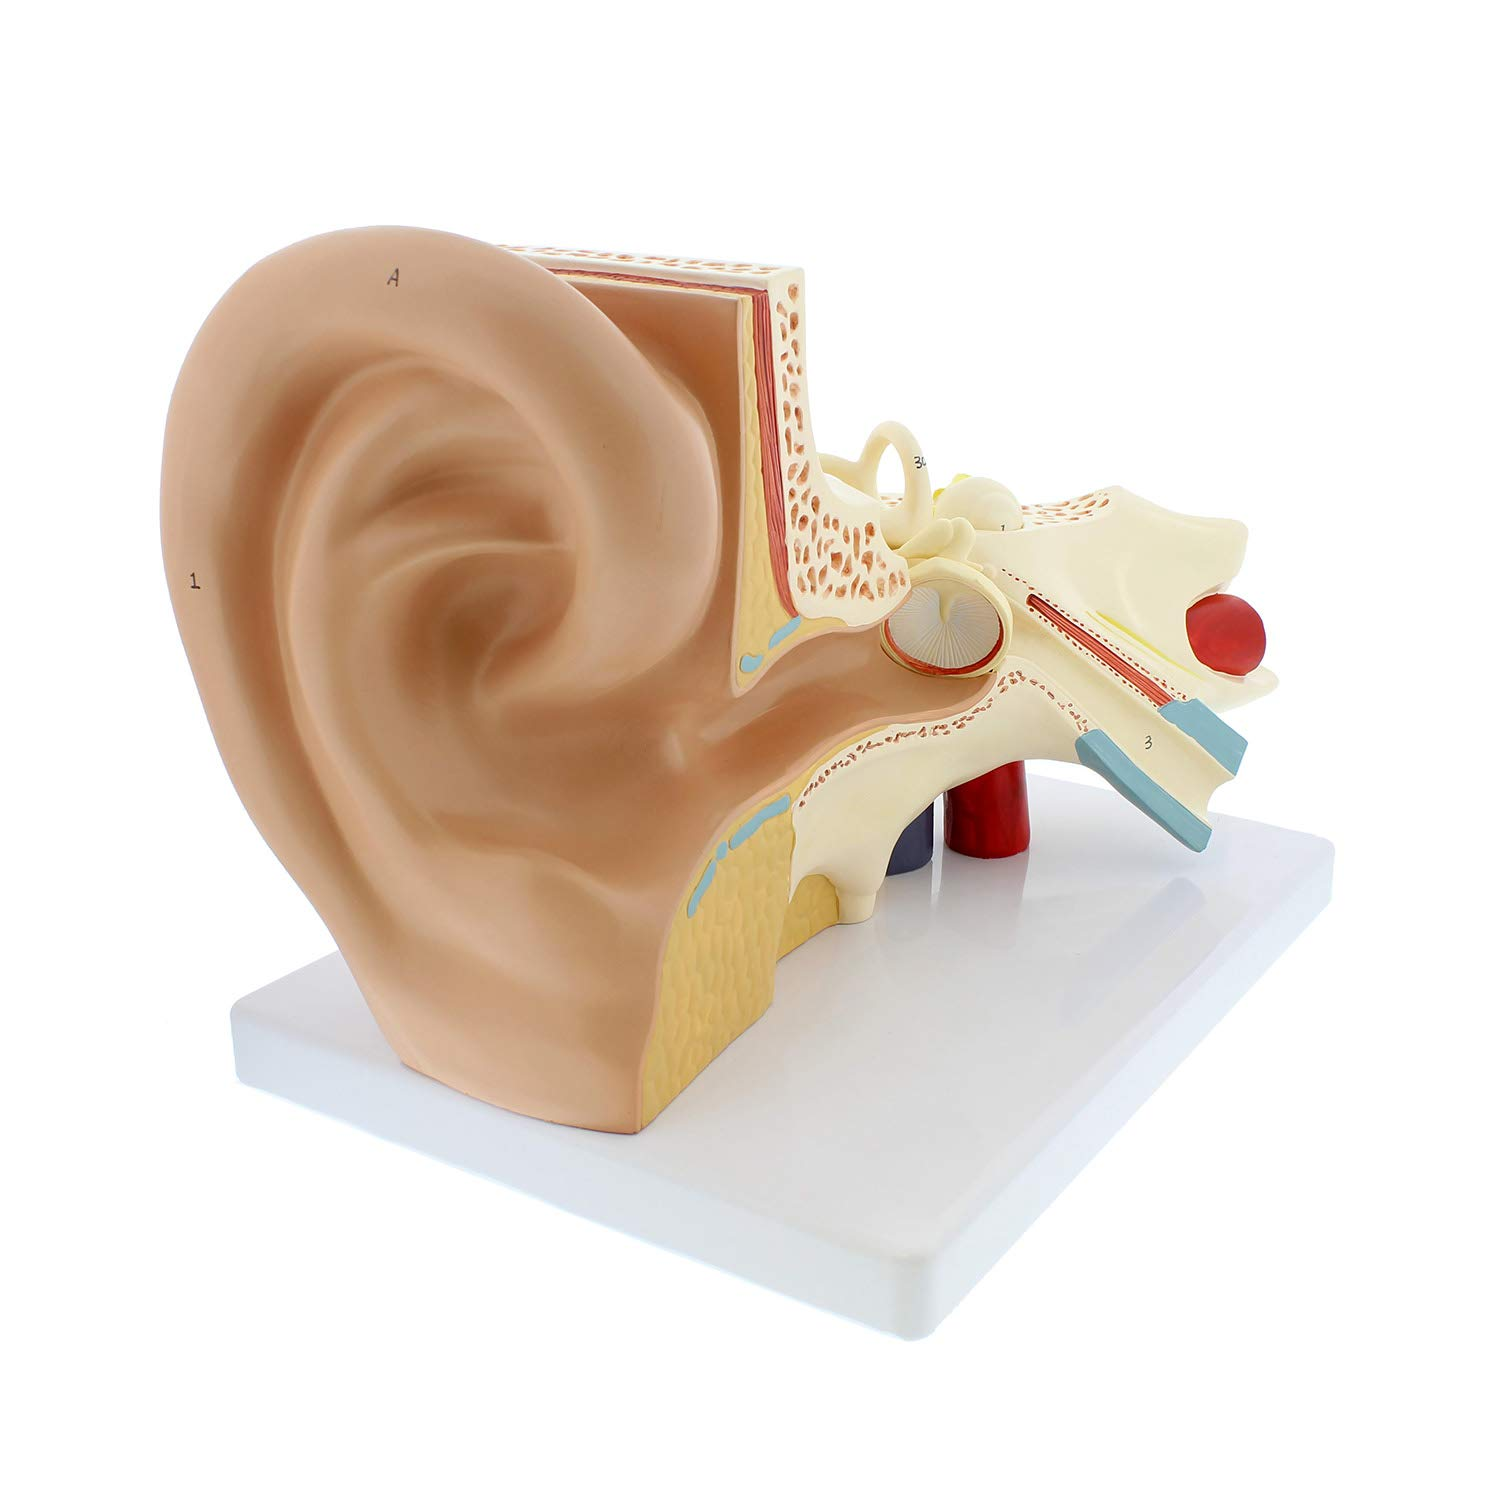 MonMed Human Ear Inventory cleanup selling sale Superior Model Anatomy Mi of 3D Display Outer